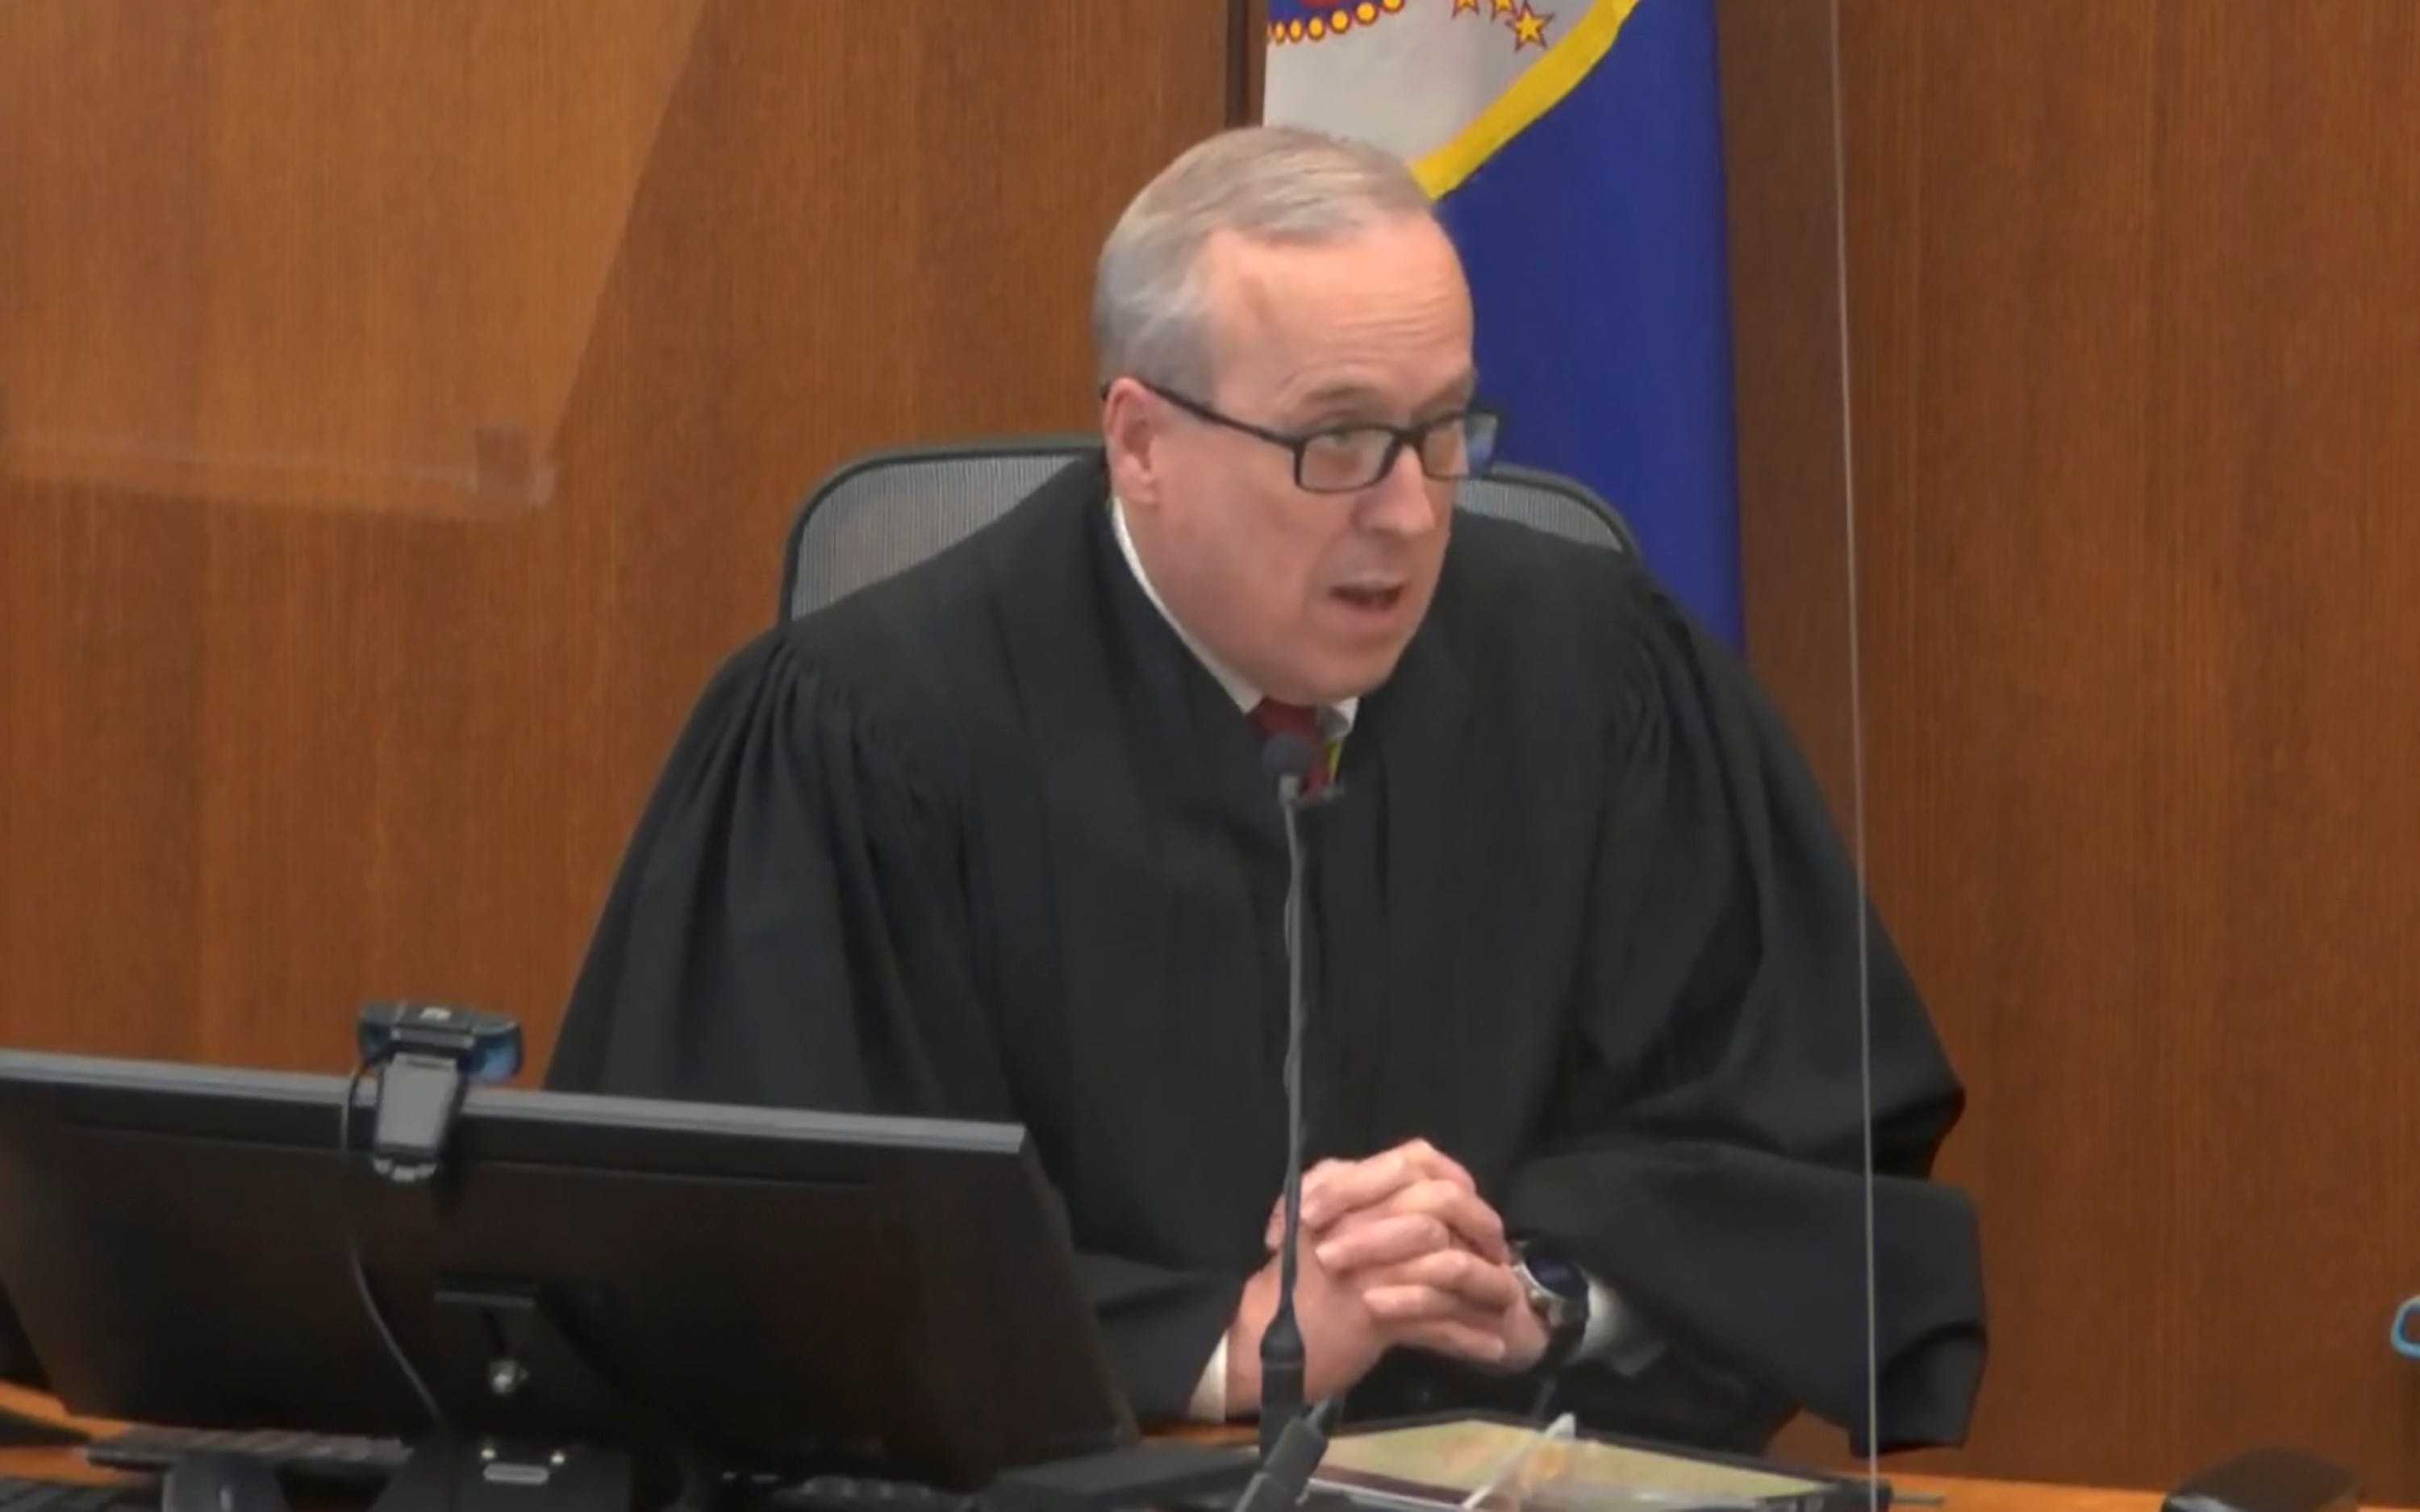 What happens next now that closing arguments are set in the Derek Chauvin trial? We explain how jury deliberations will work.